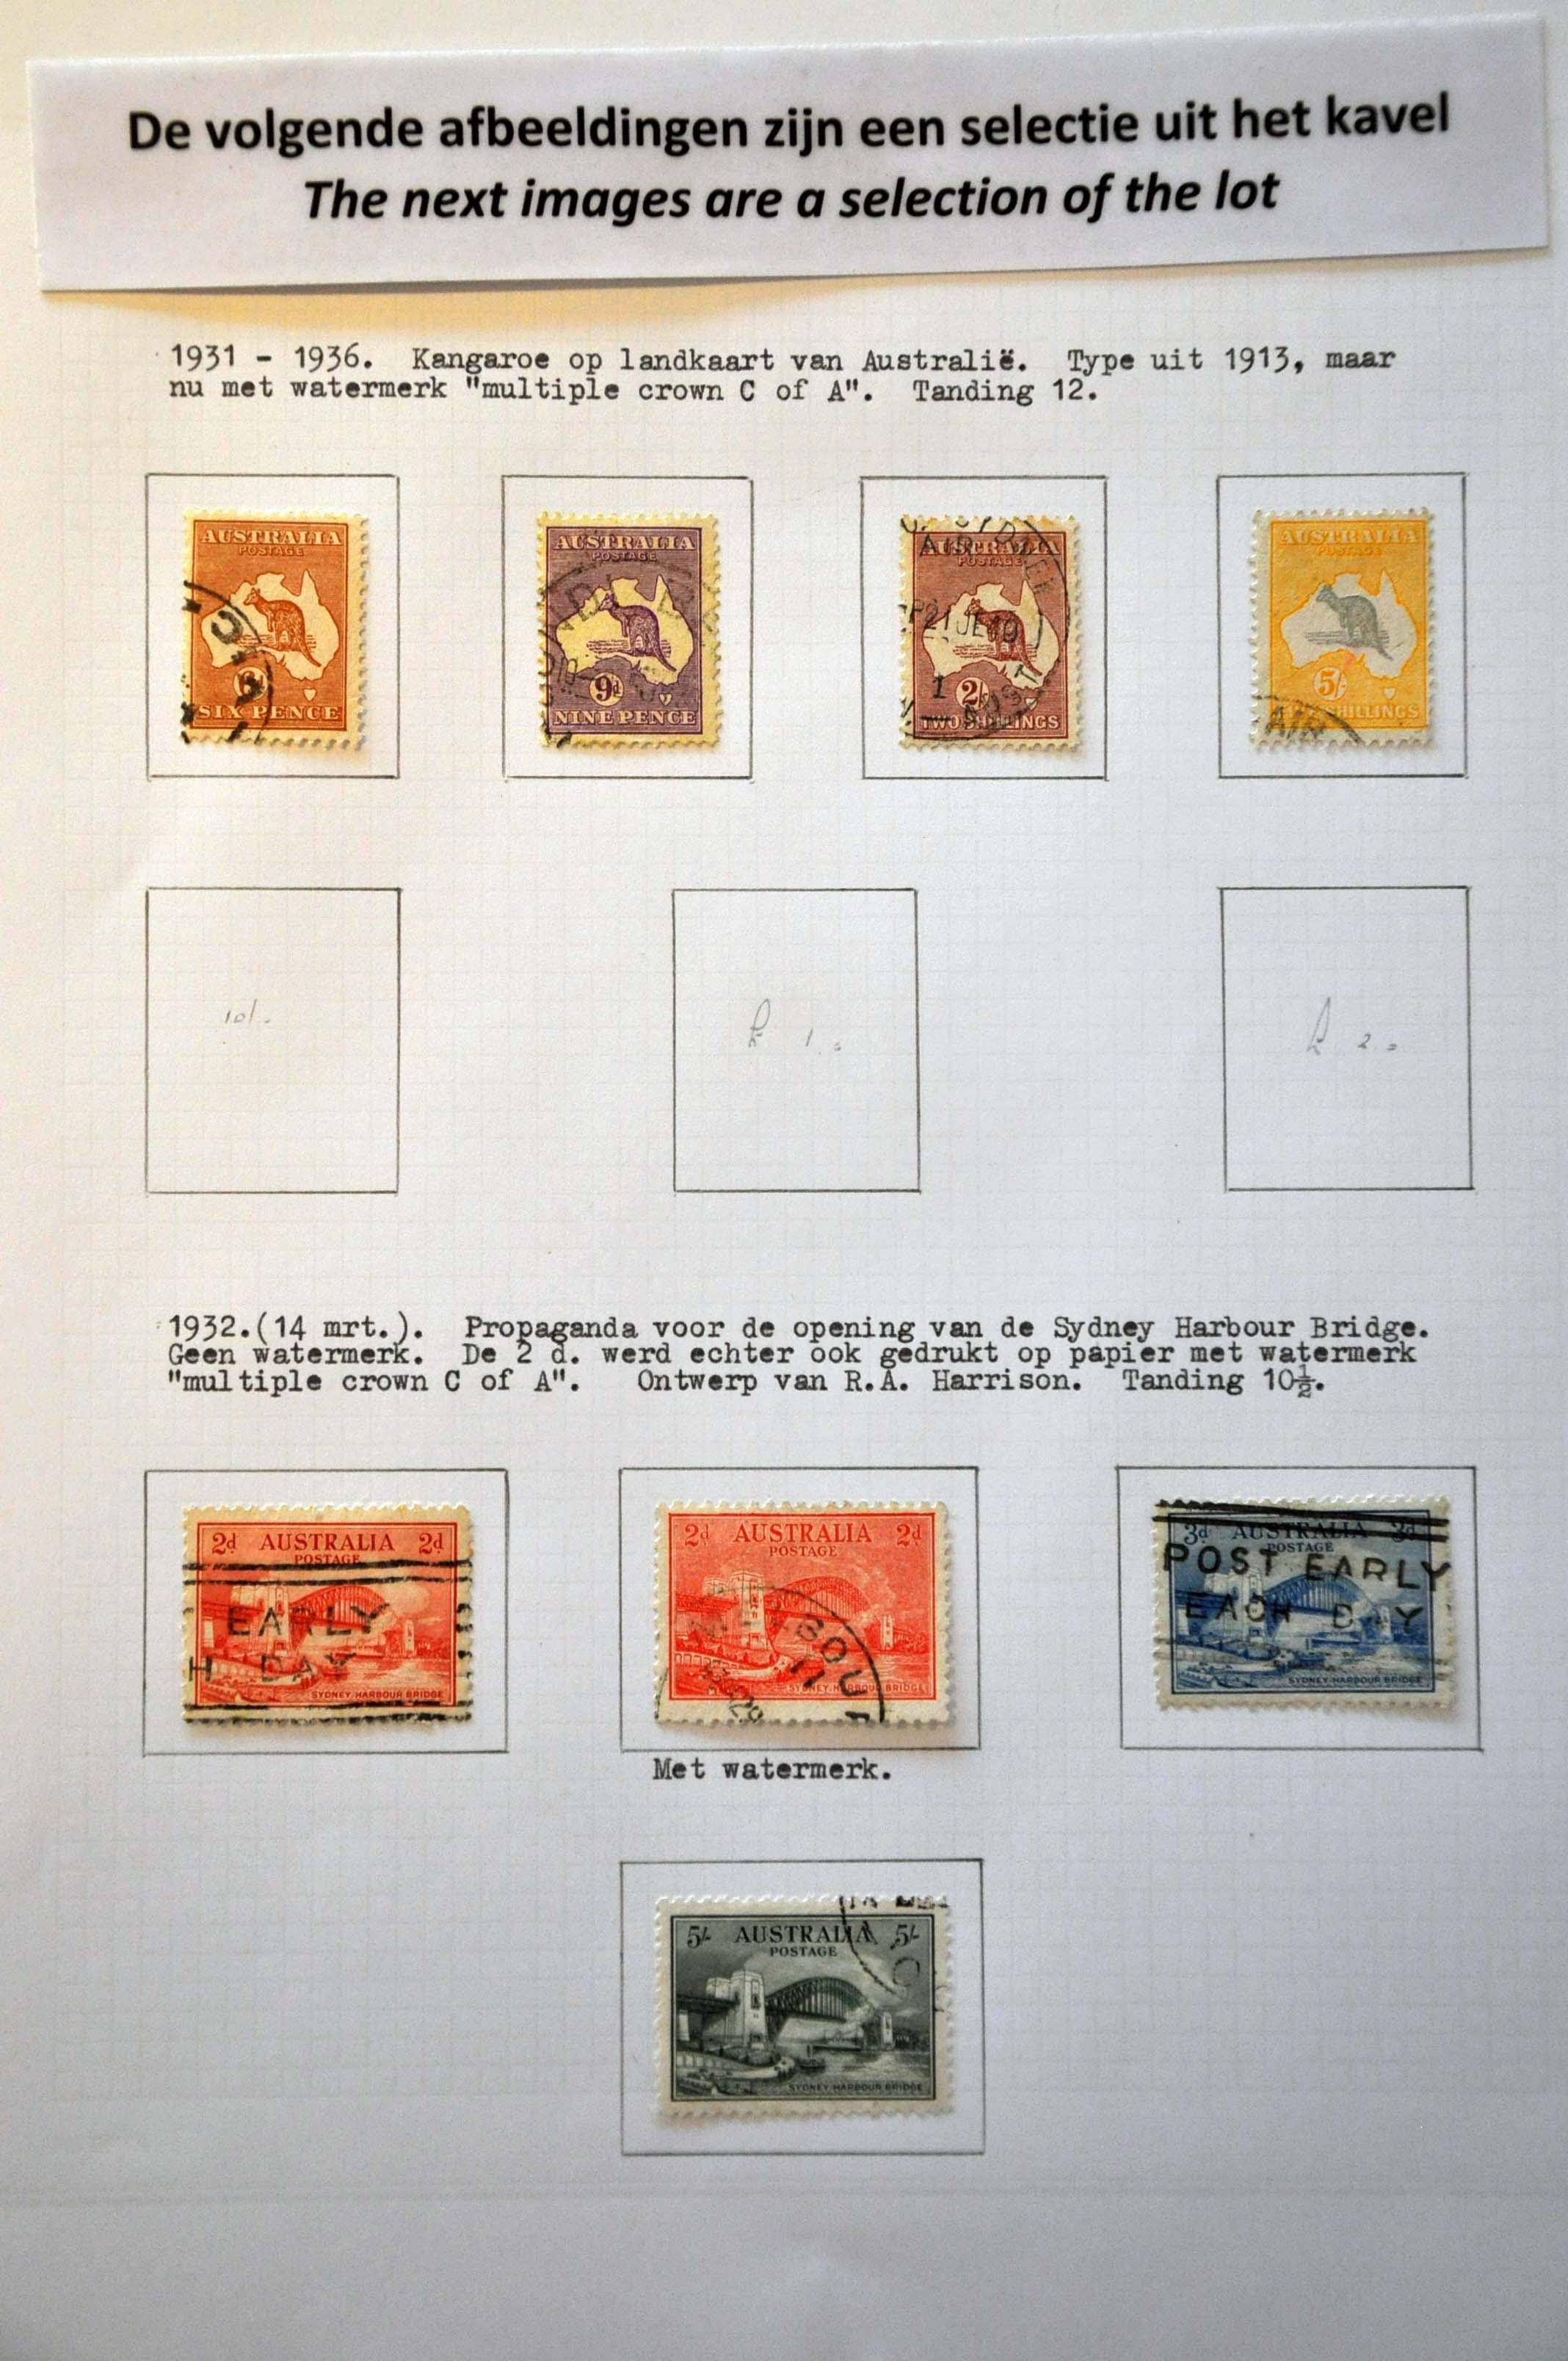 Lot 739 - Great Britain and former colonies Australia -  Corinphila Veilingen Auction 244 -Netherlands and former colonies, WW2 Postal History, Bosnia, German and British colonies, Egypt. - Day 1